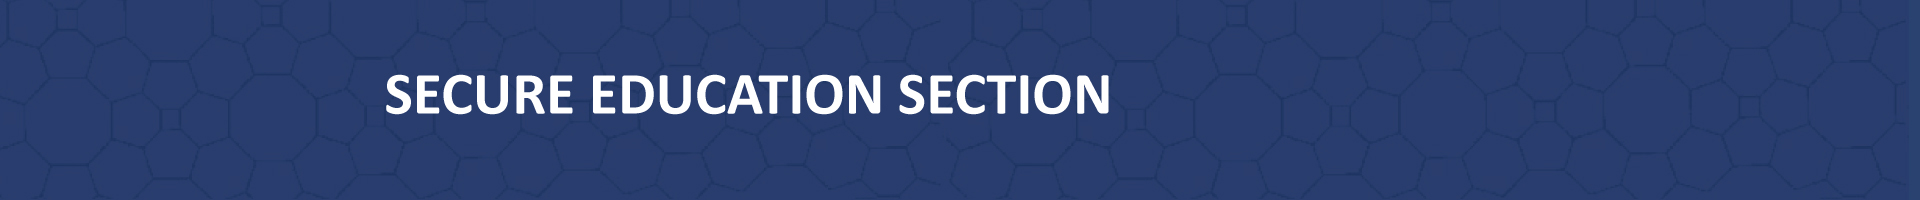 BANNER-SECURE-EDUCATION-SECTION